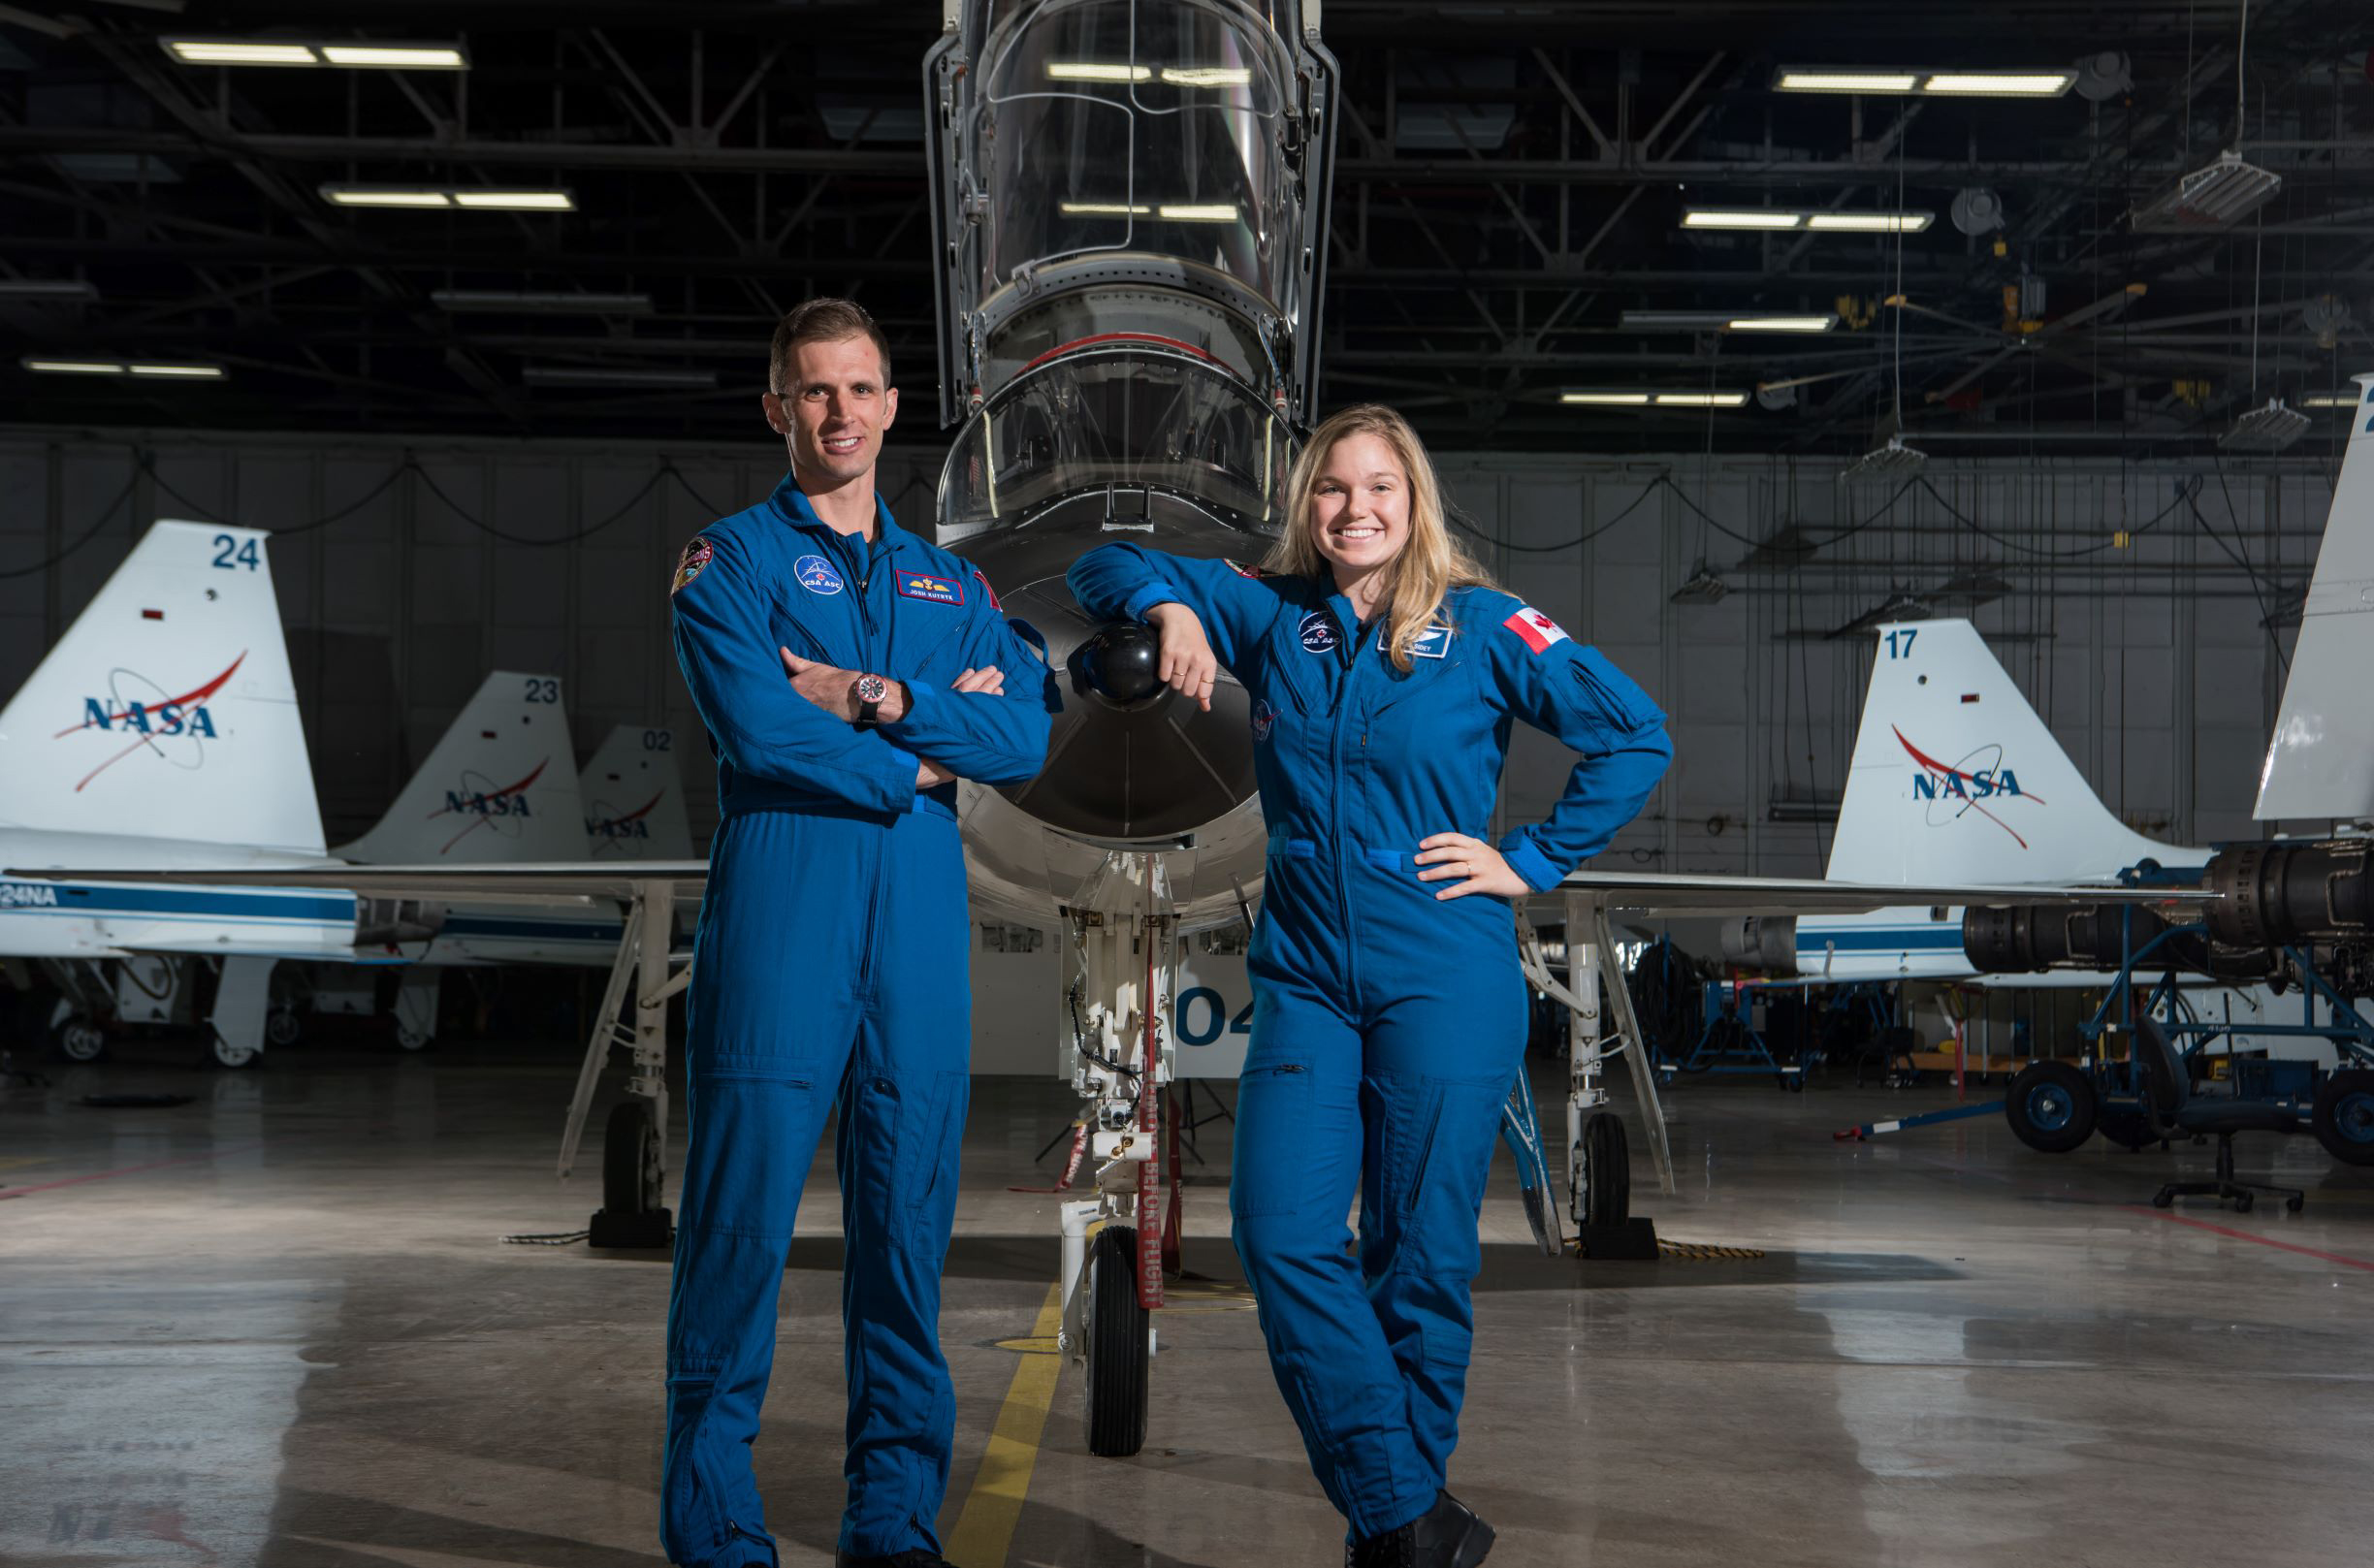 A man and a woman wearing flight suits stand in front of a fighter aircraft in a hangar.